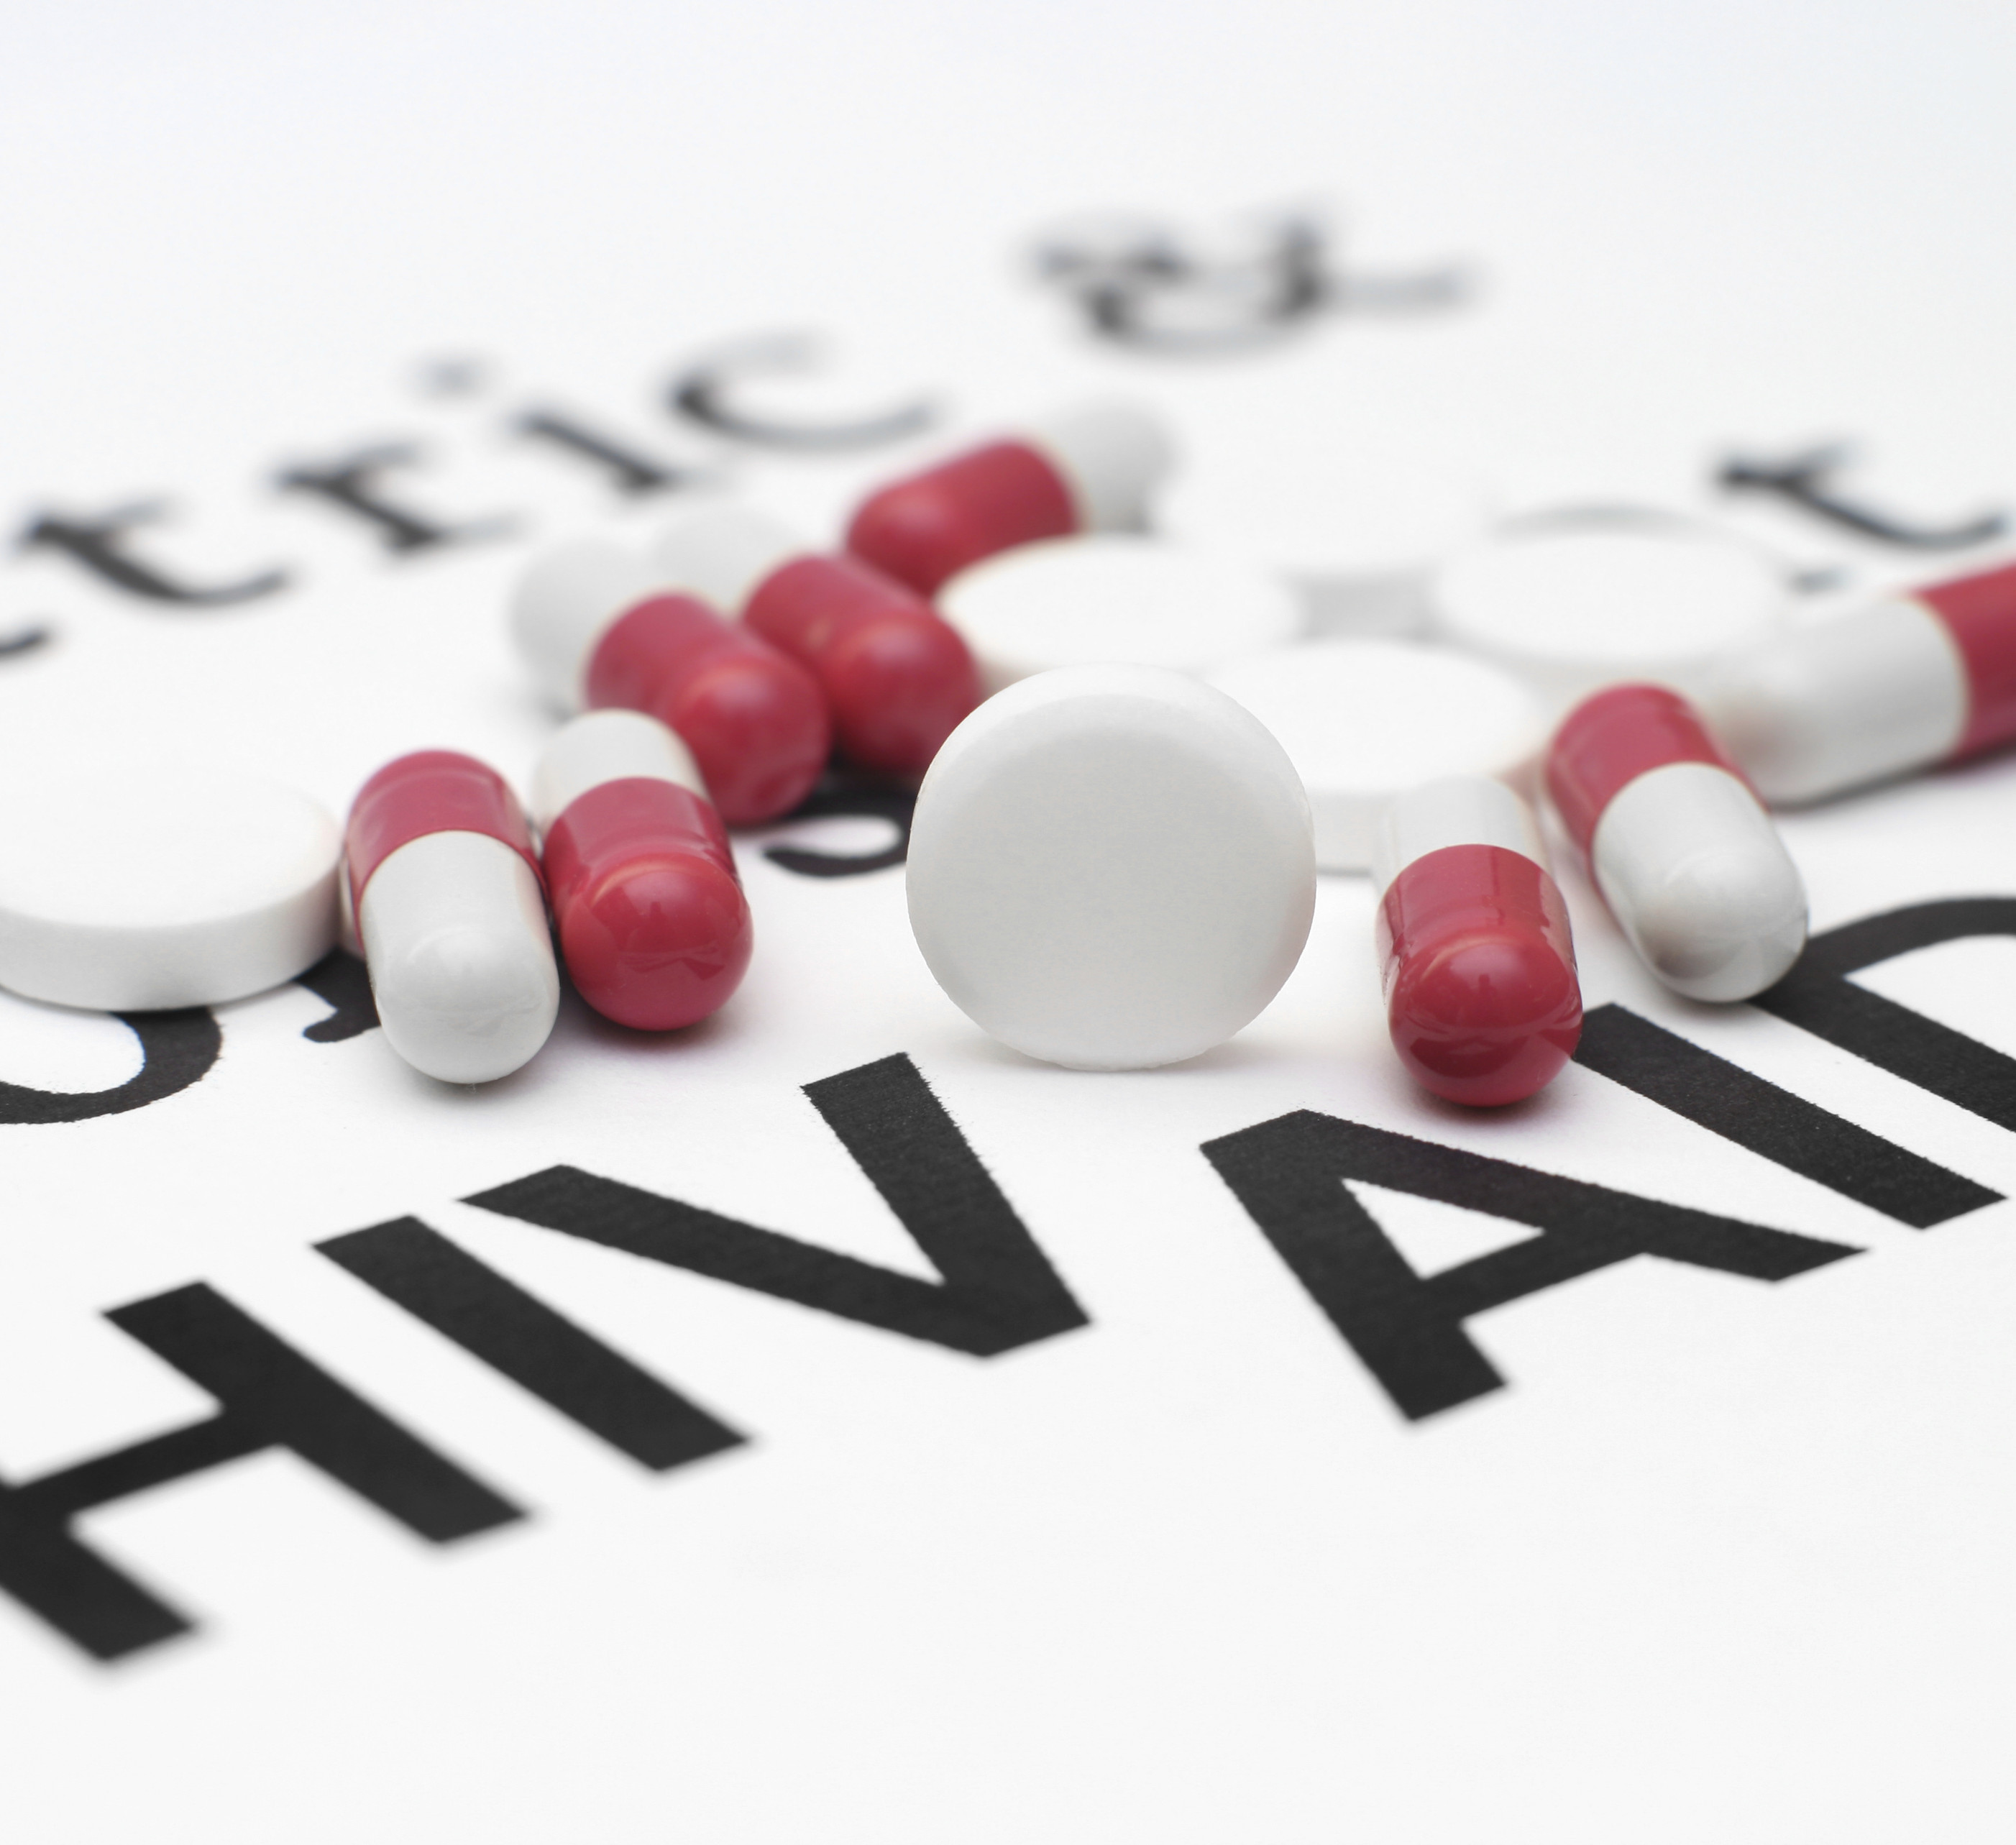 HIV-AIDS treatments, although antiretrovirals stop HIV replicating, they do not cure the infection.